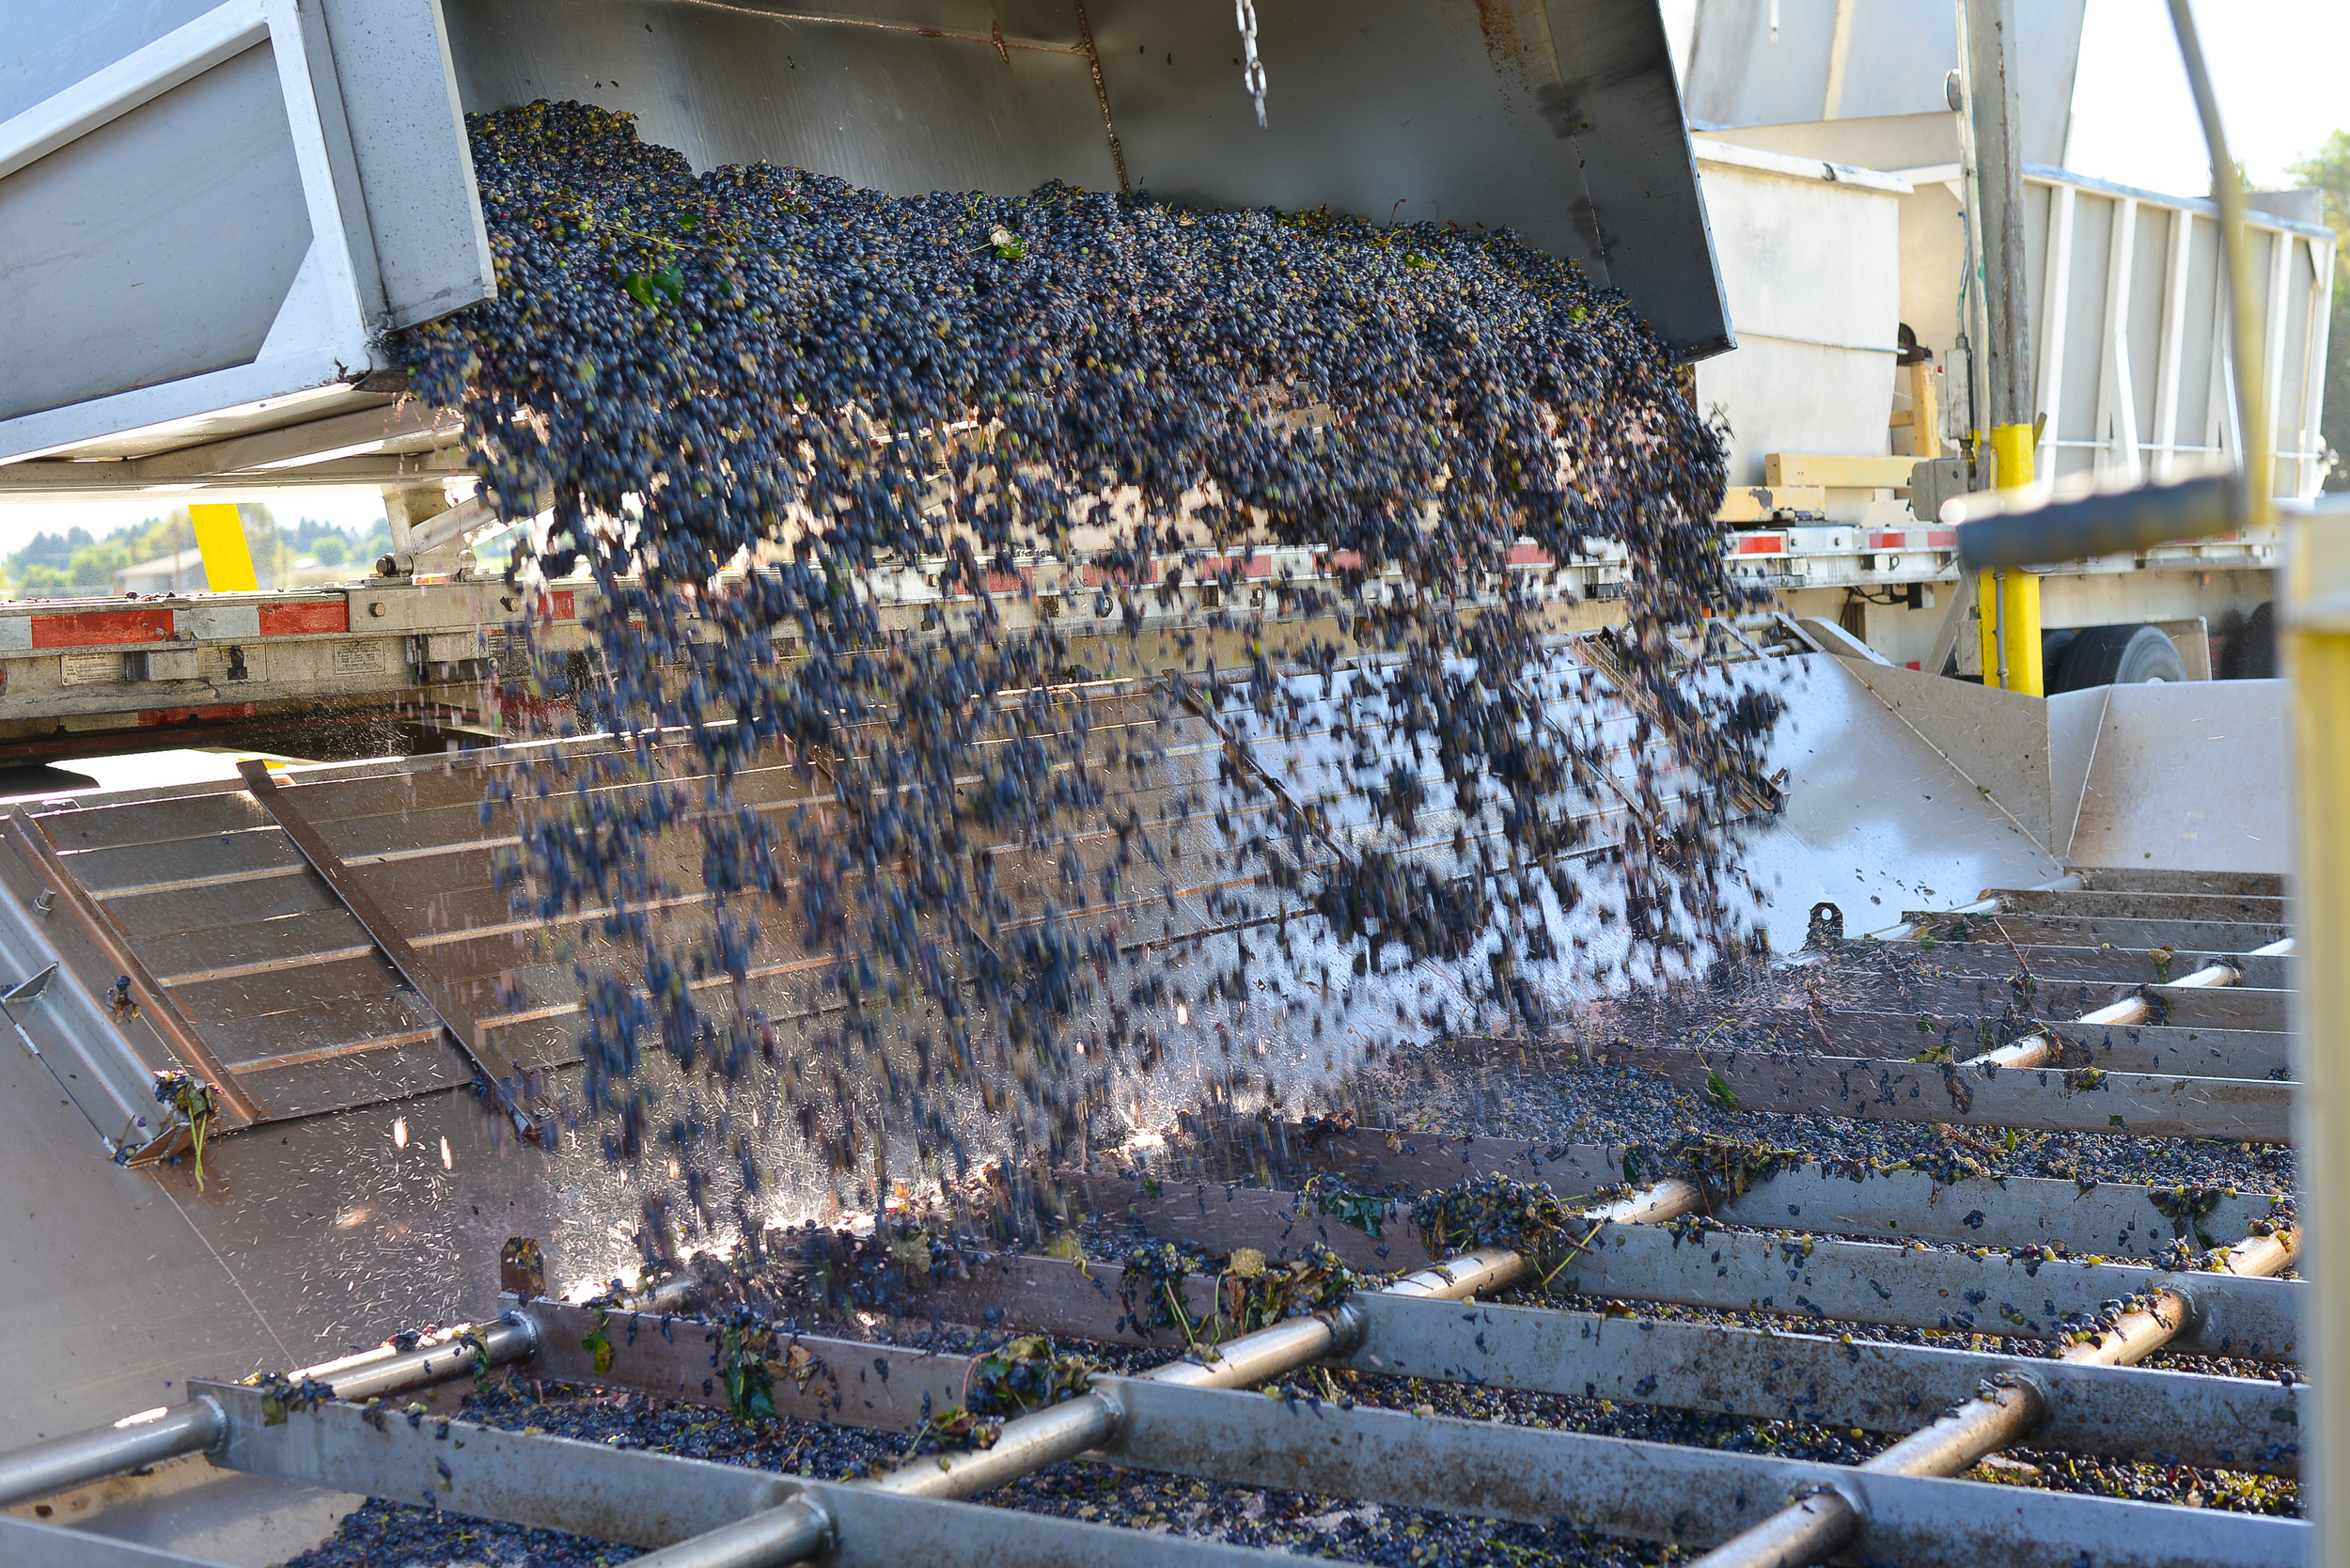 Eight hours prior, these Concord grapes were on the vine! Here they are arriving at the factory.